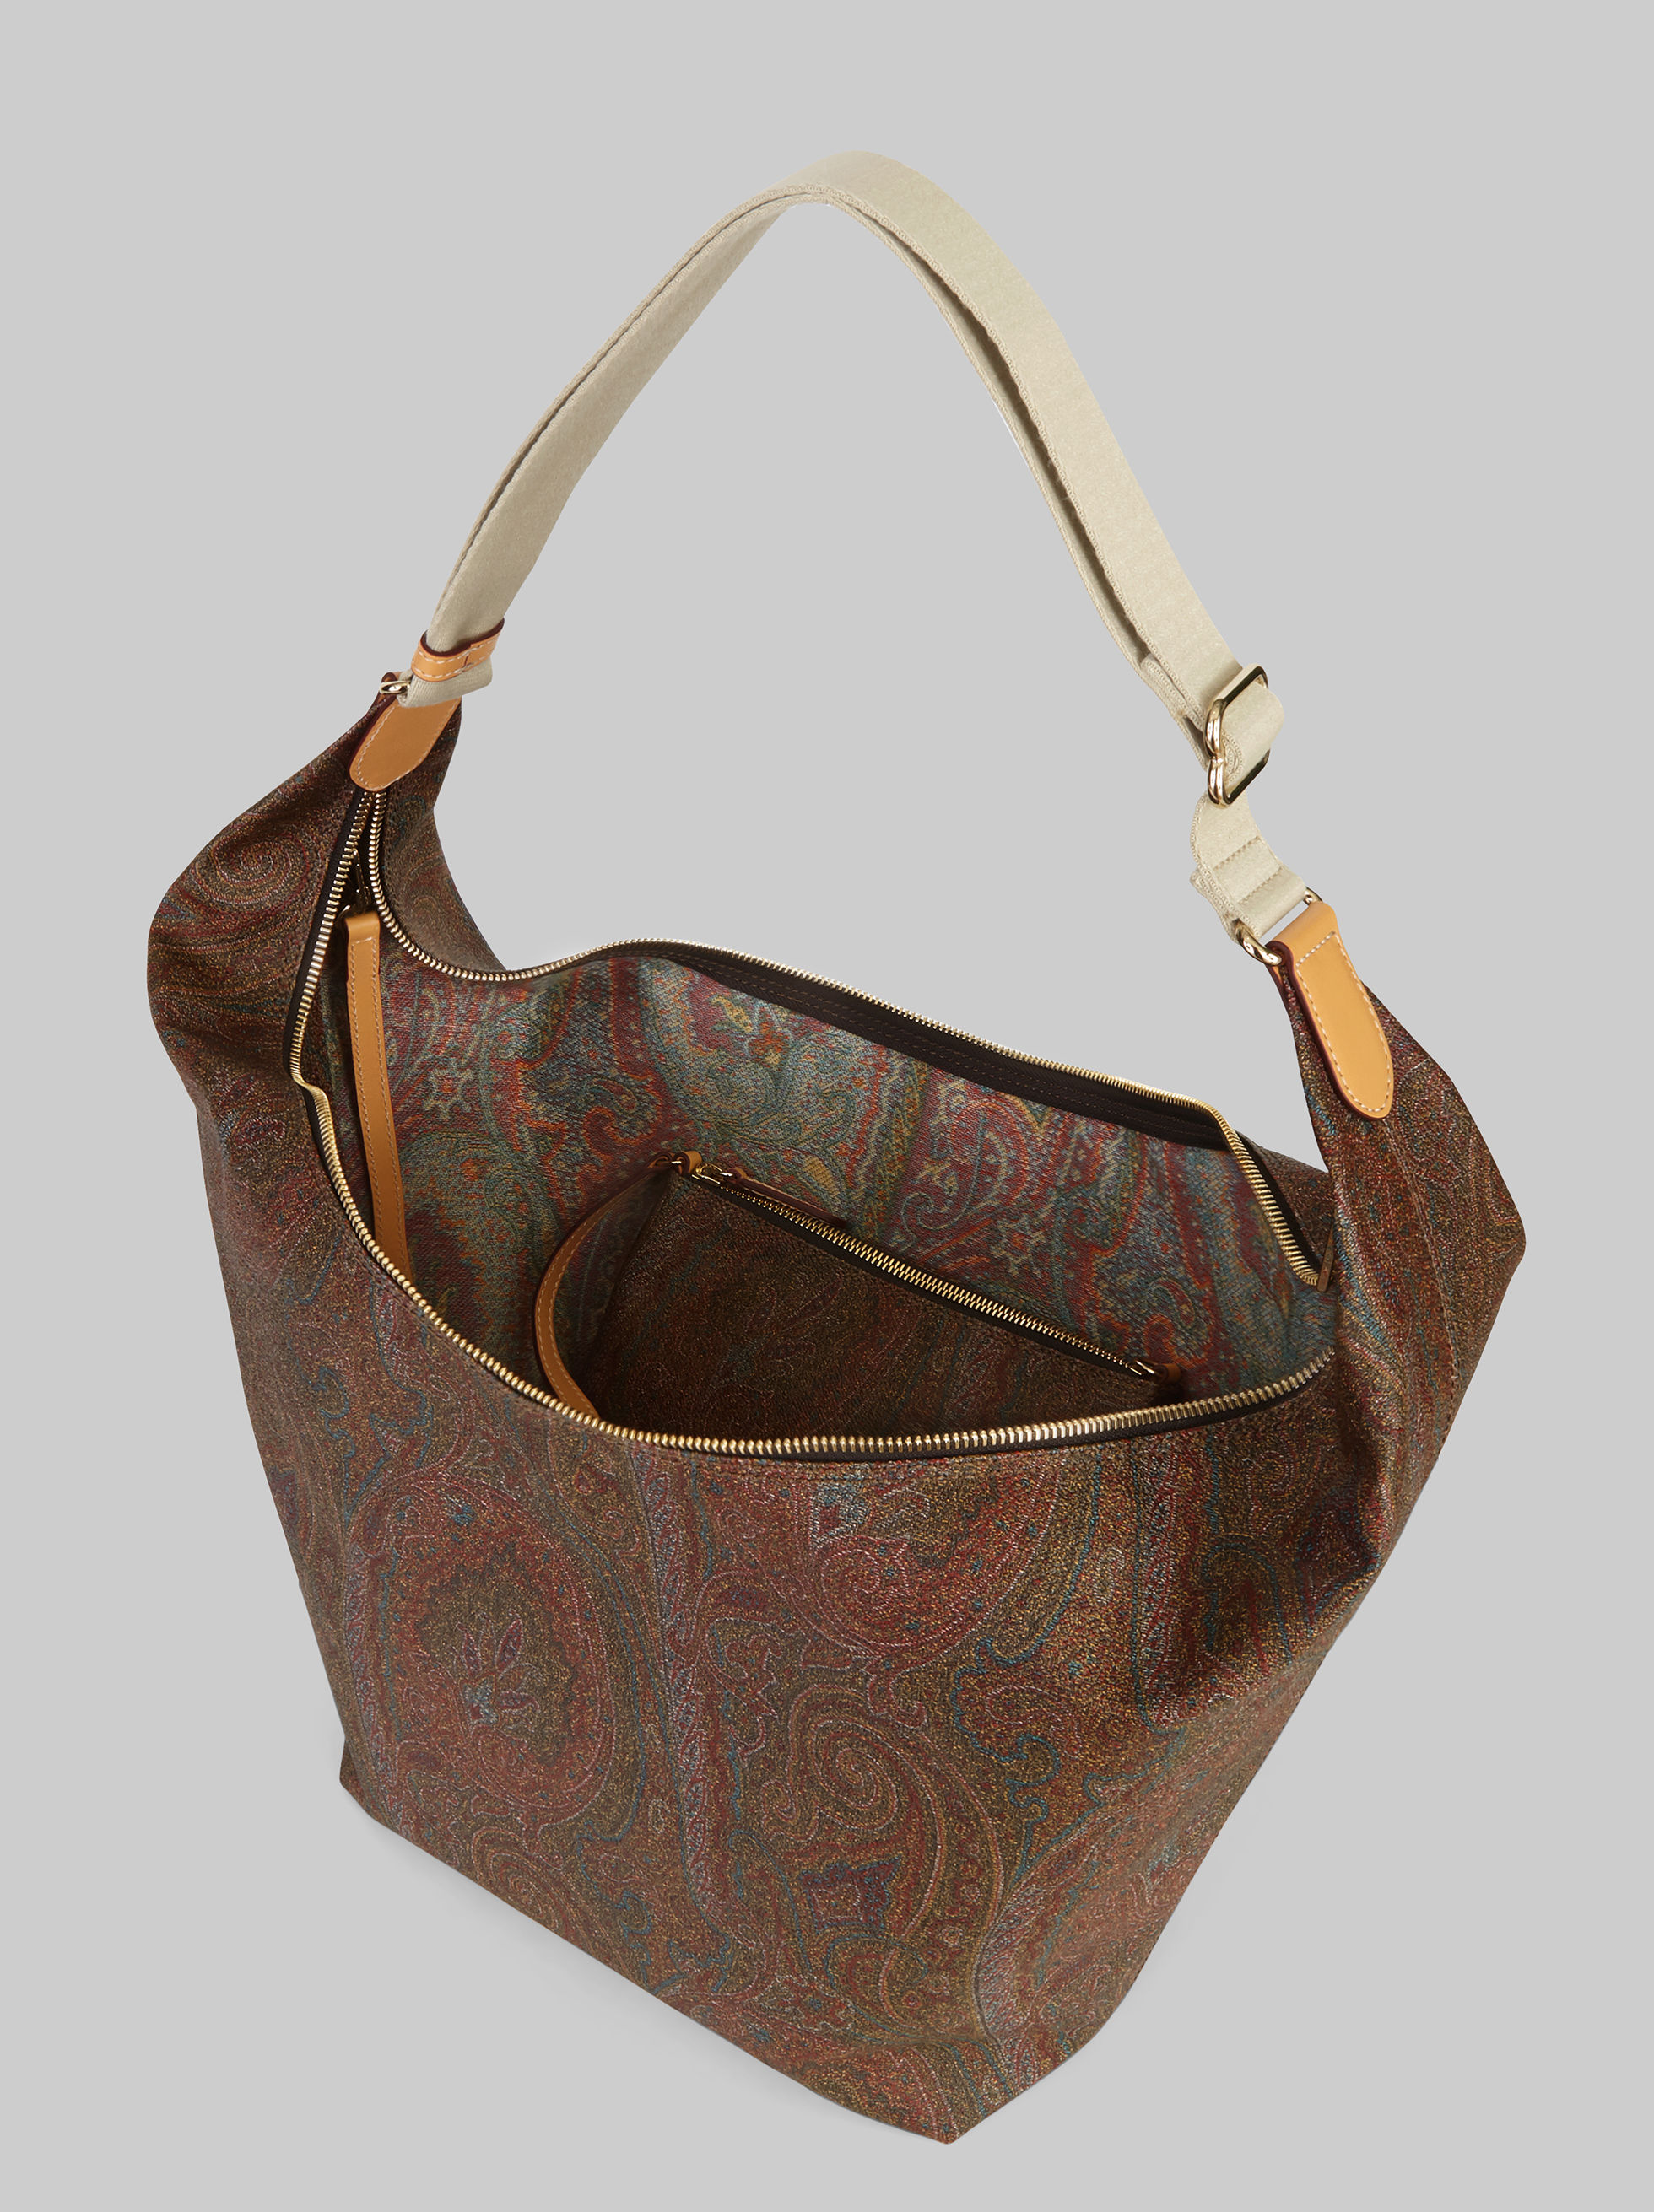 PAISLEY SCHULTERTASCHE MIT MAKE-UP BAG